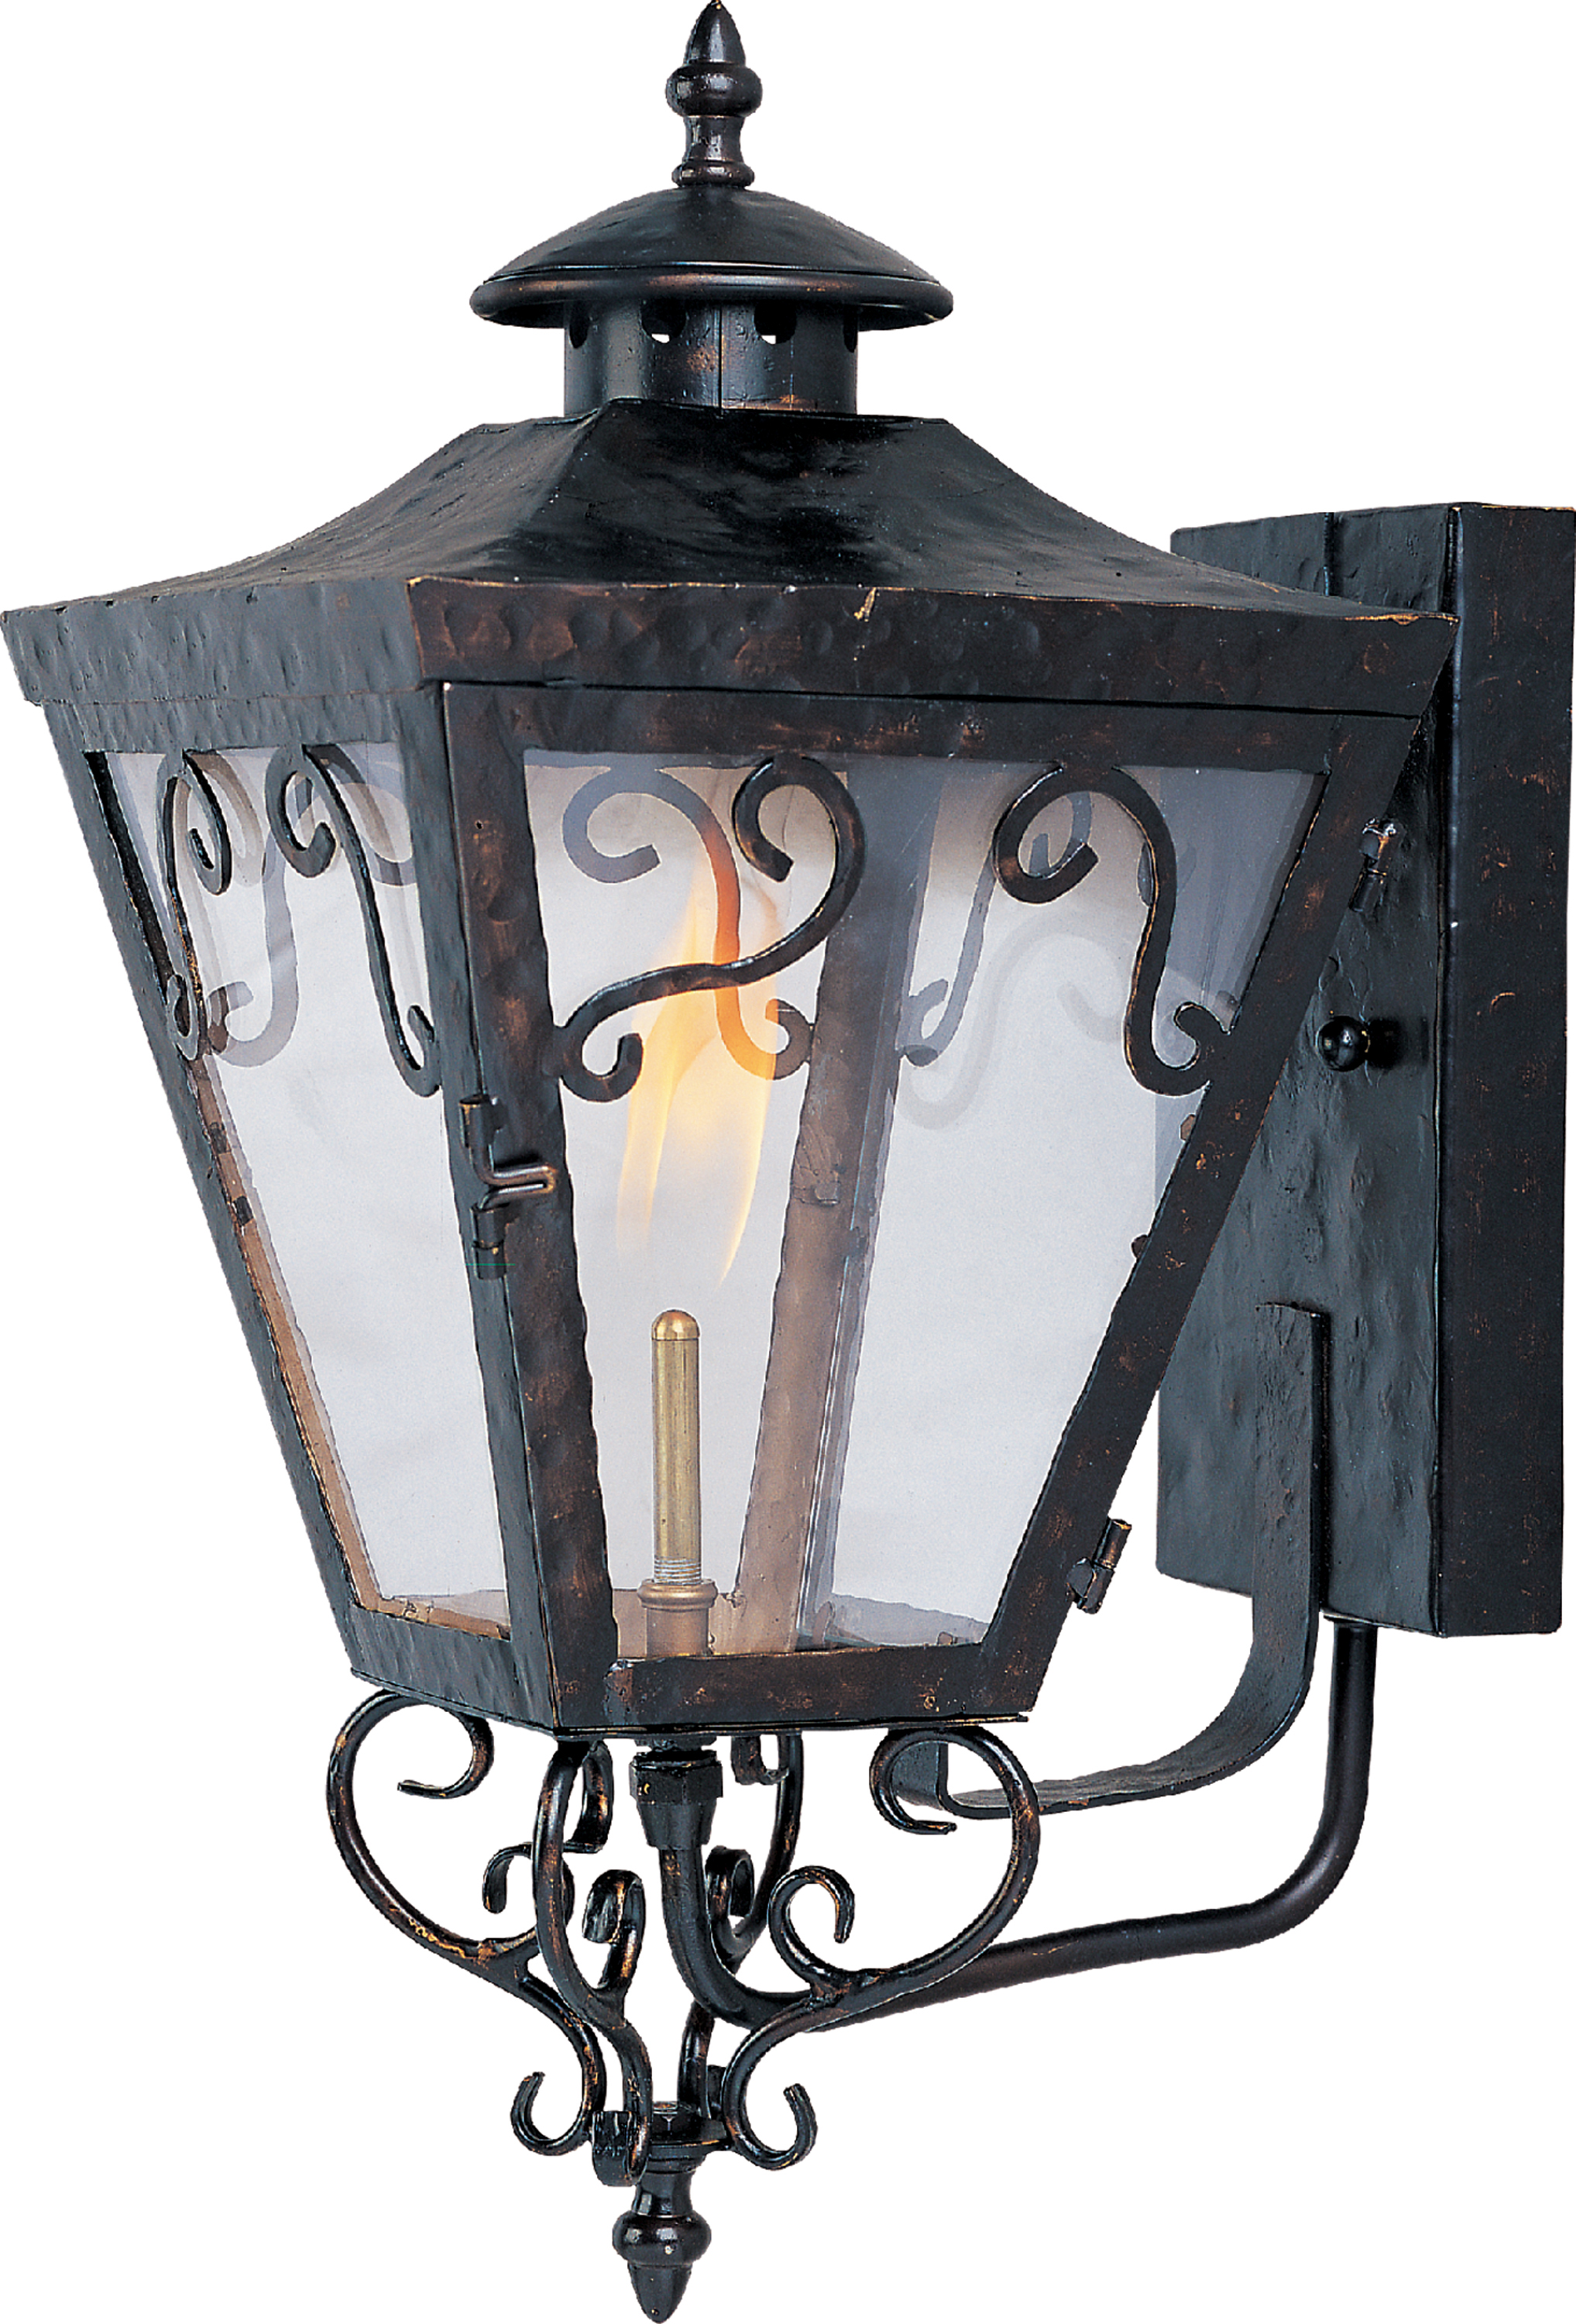 lighting image gas lamp outdoor finding beautiful light natural new for porch style mantles full or parts a ideas